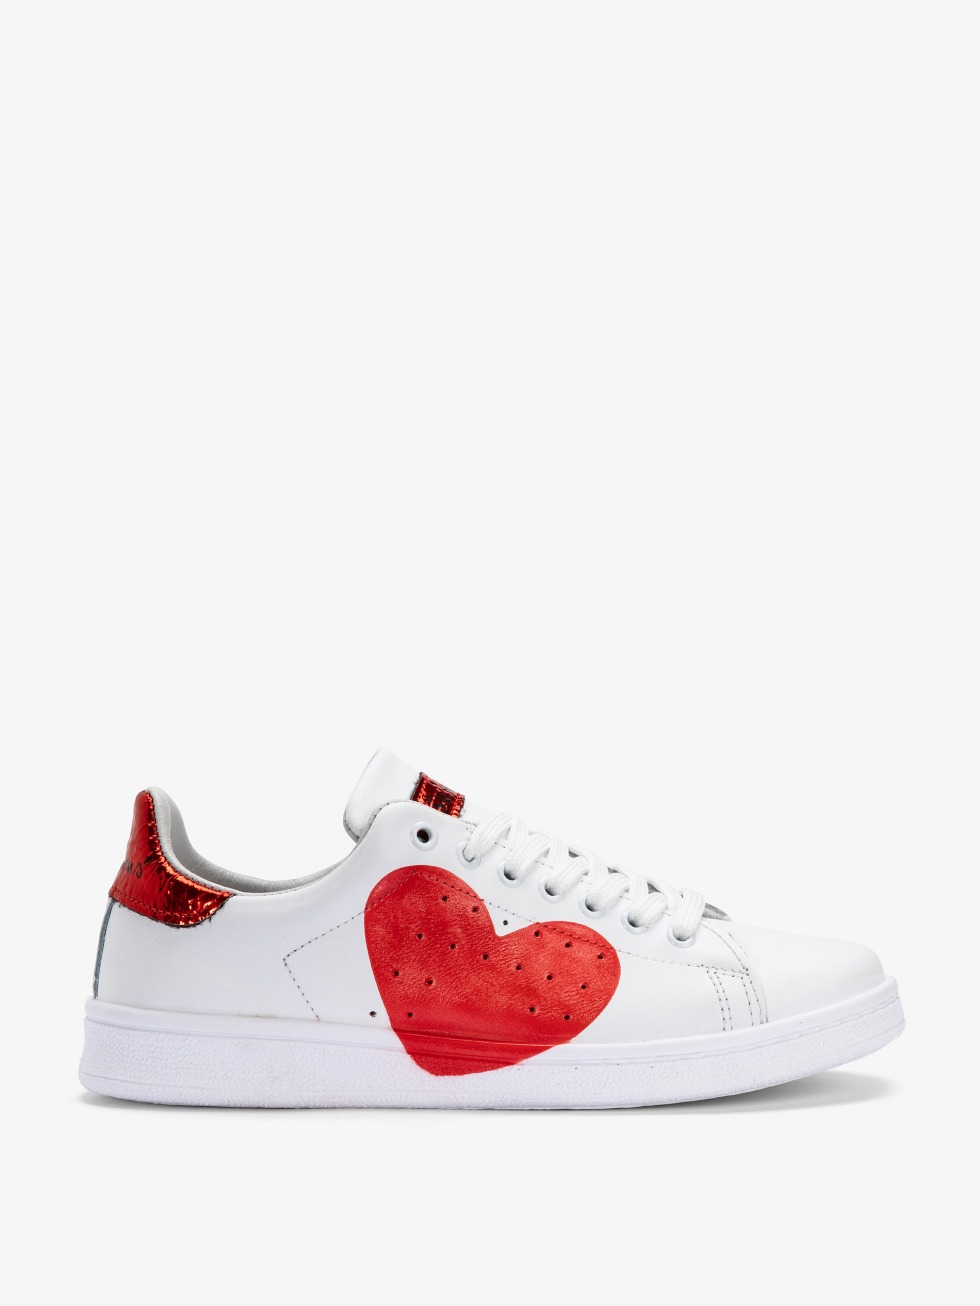 Sneakers Daiquiri Bianco - Cuore Space Red